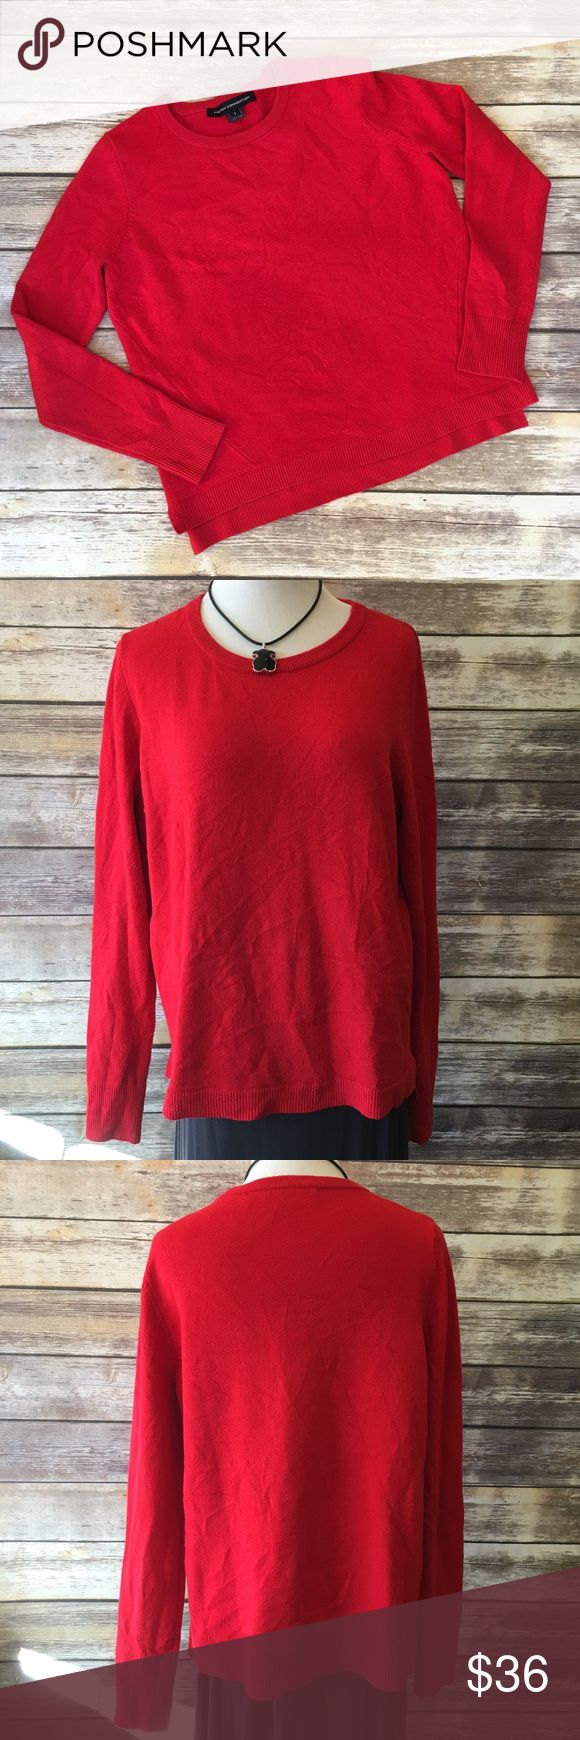 "French Connection Red Oversized Sweater French Connection Red Oversized Sweater. The vibrant red color pairs perfectly with leggings or jeans. Measures pit to pit 21""/ front length 24""/ back length 25. Has a few signs of pilling under the pit area. Runs big French Connection Sweaters Crew & Scoop Necks"